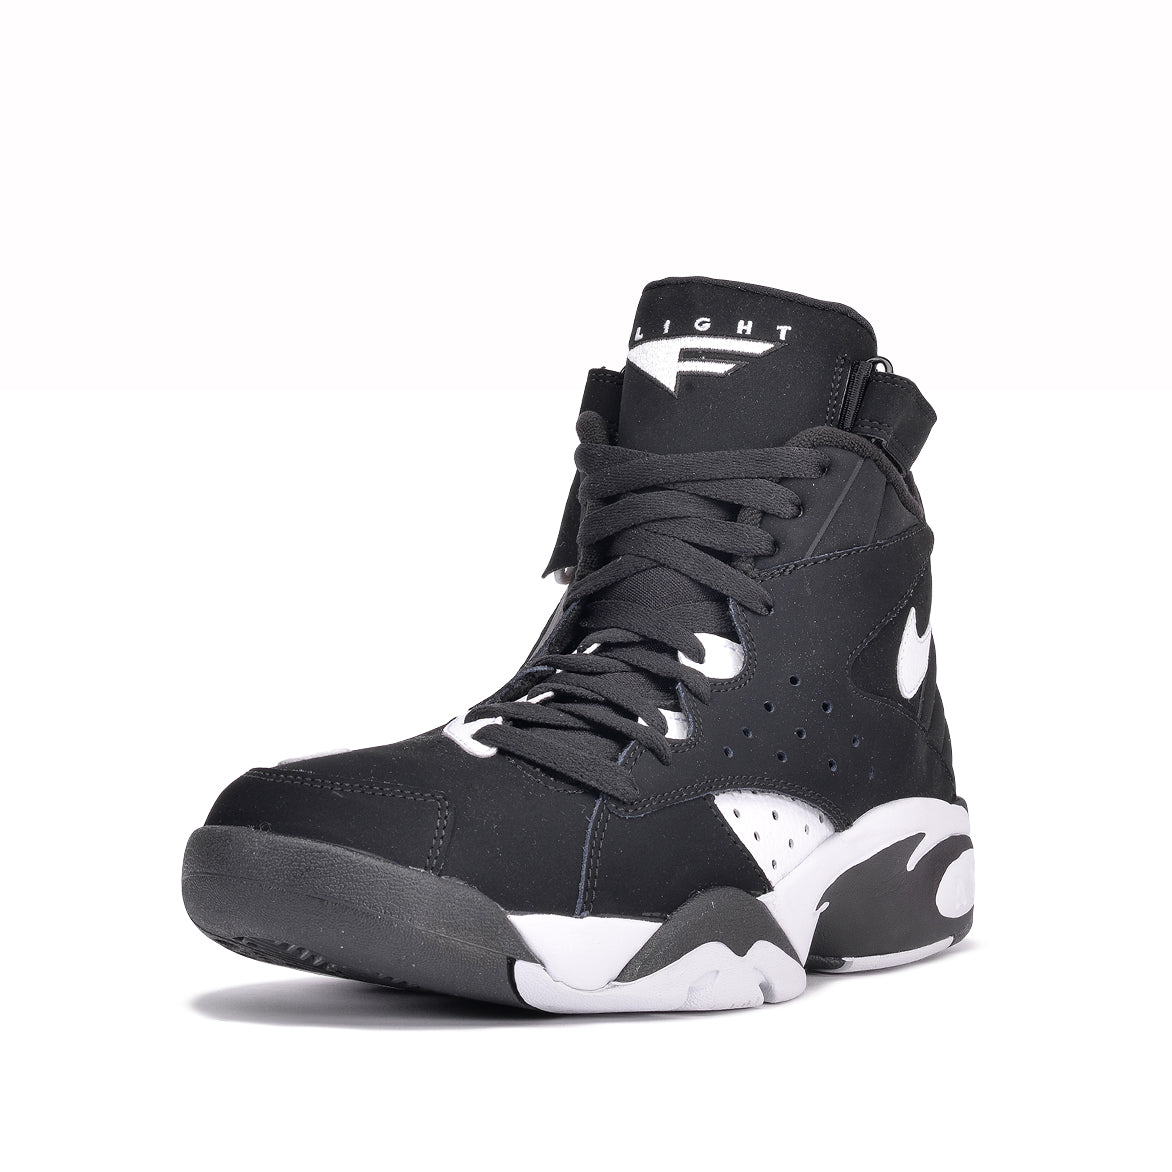 AIR MAESTRO II LTD - BLACK / WHITE